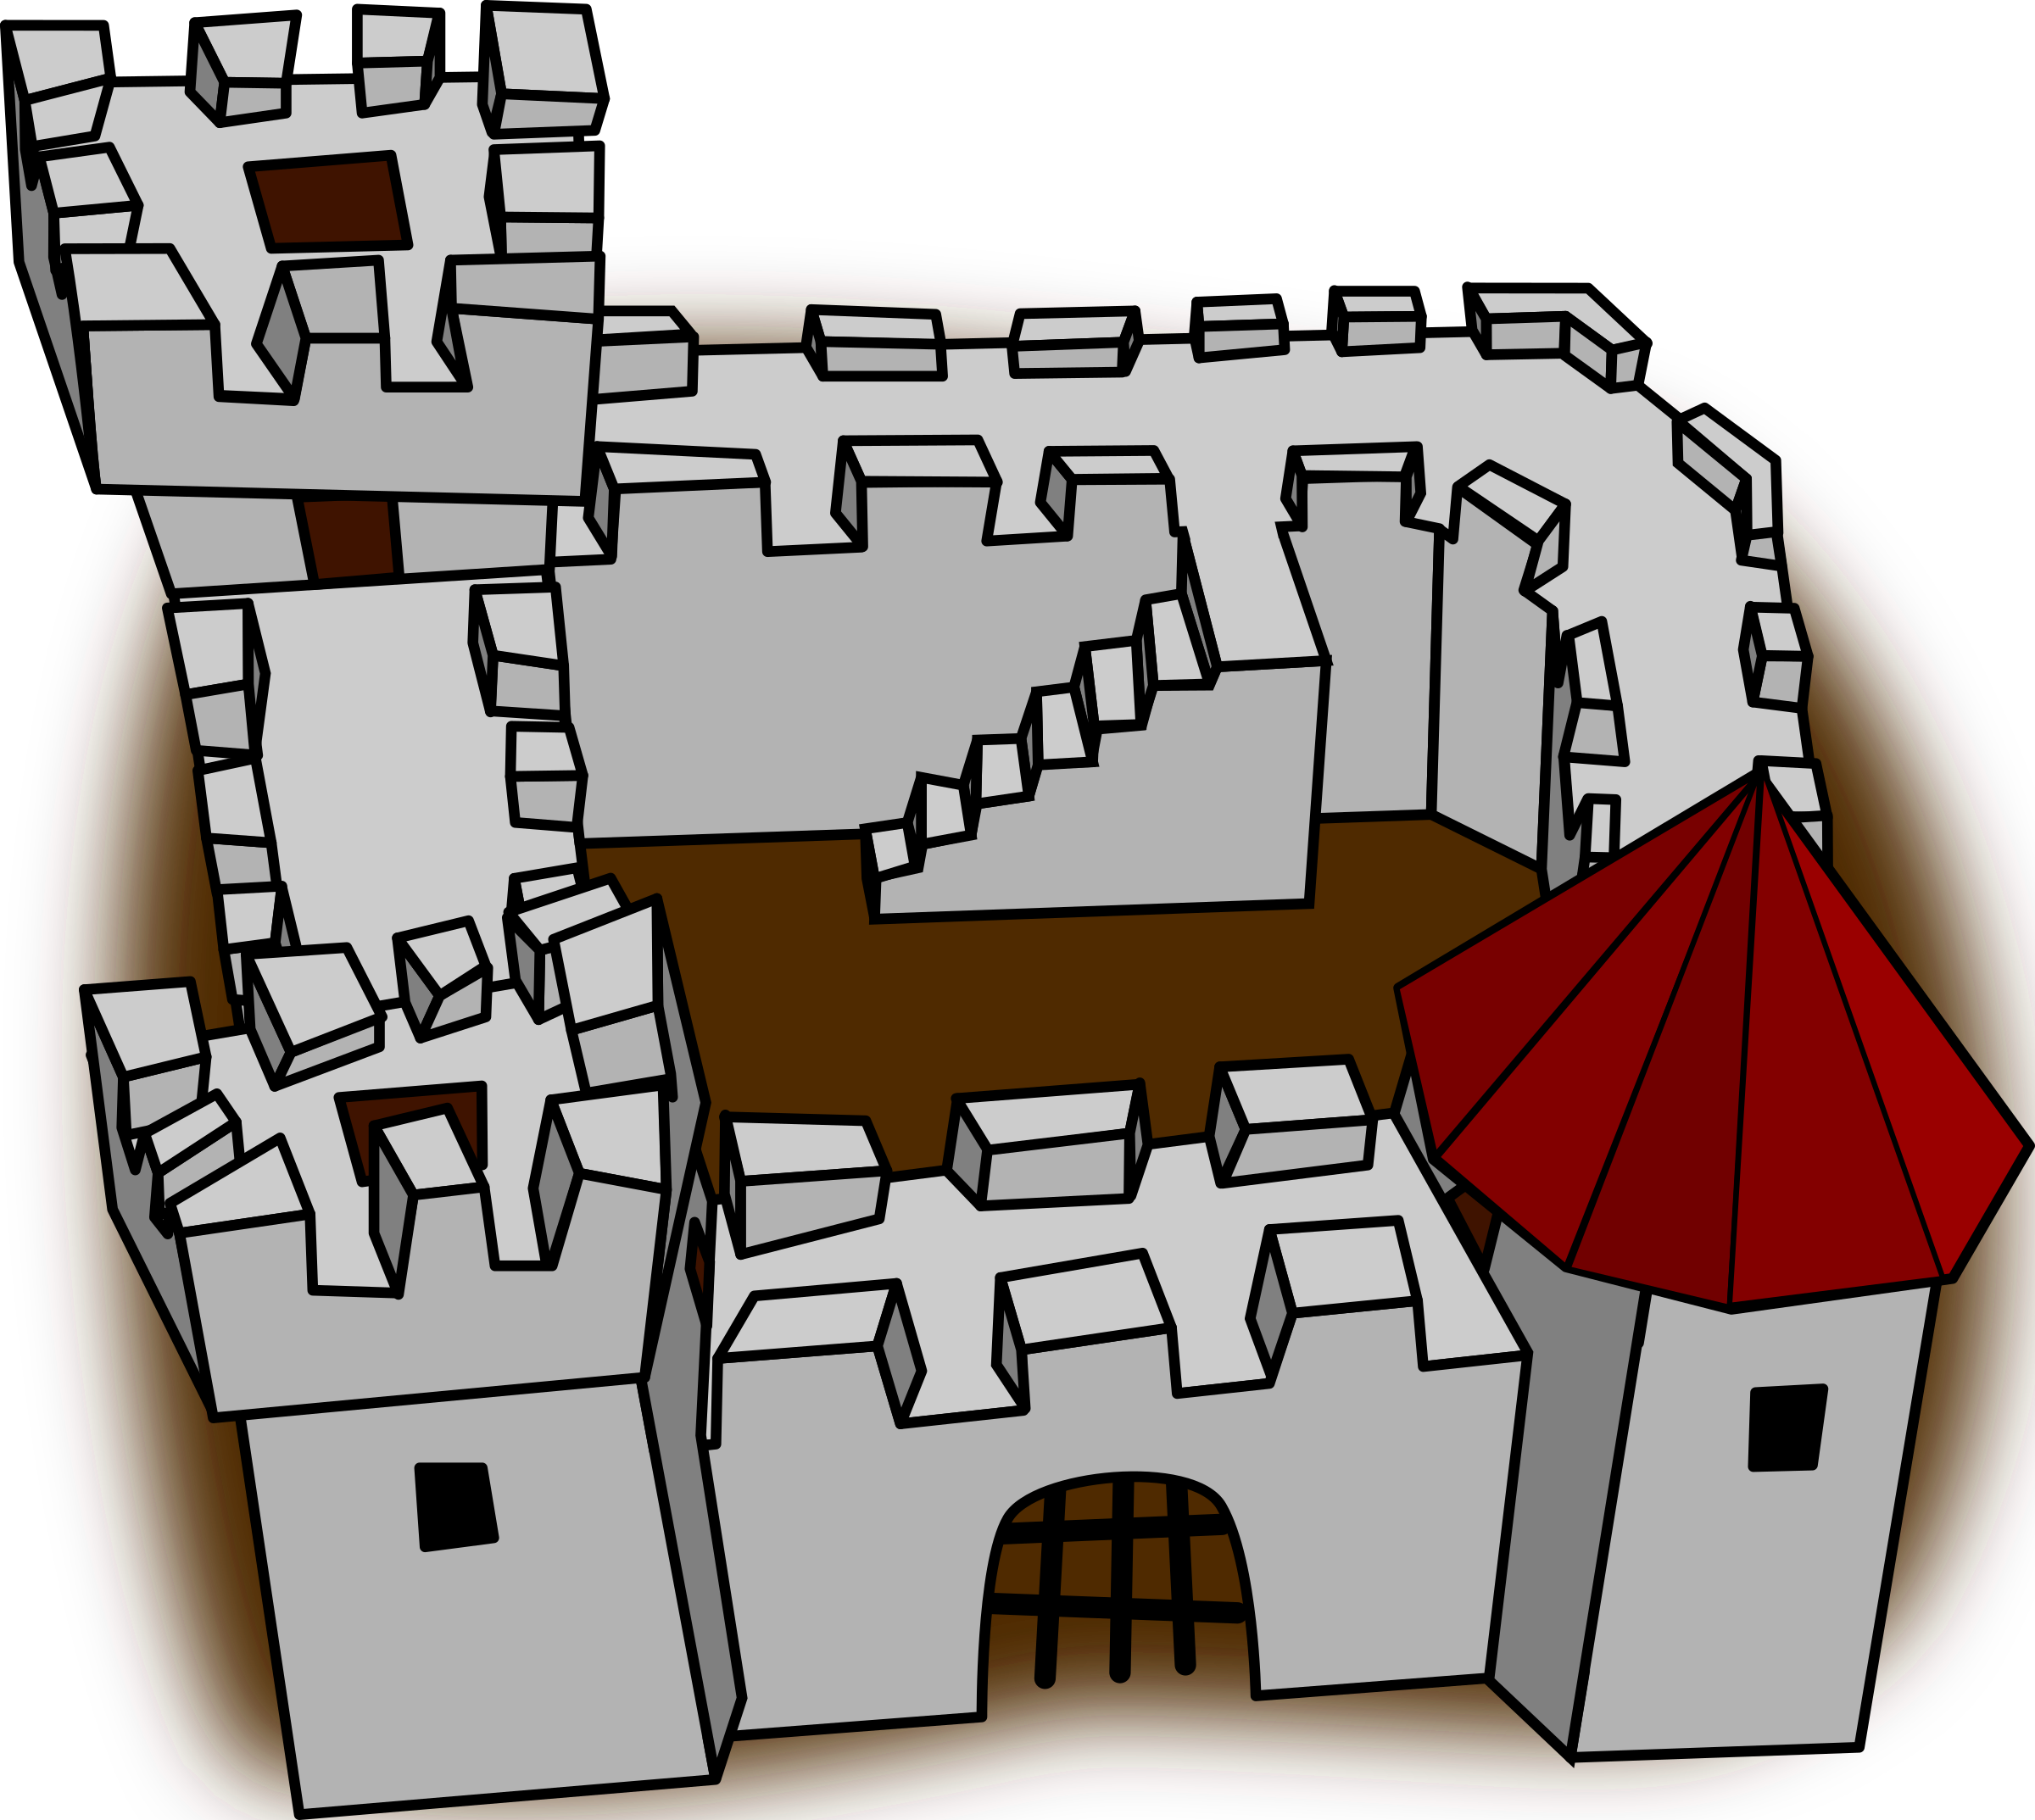 Cartoon Comic Fort Fortress Stronghold Castle by qubodup